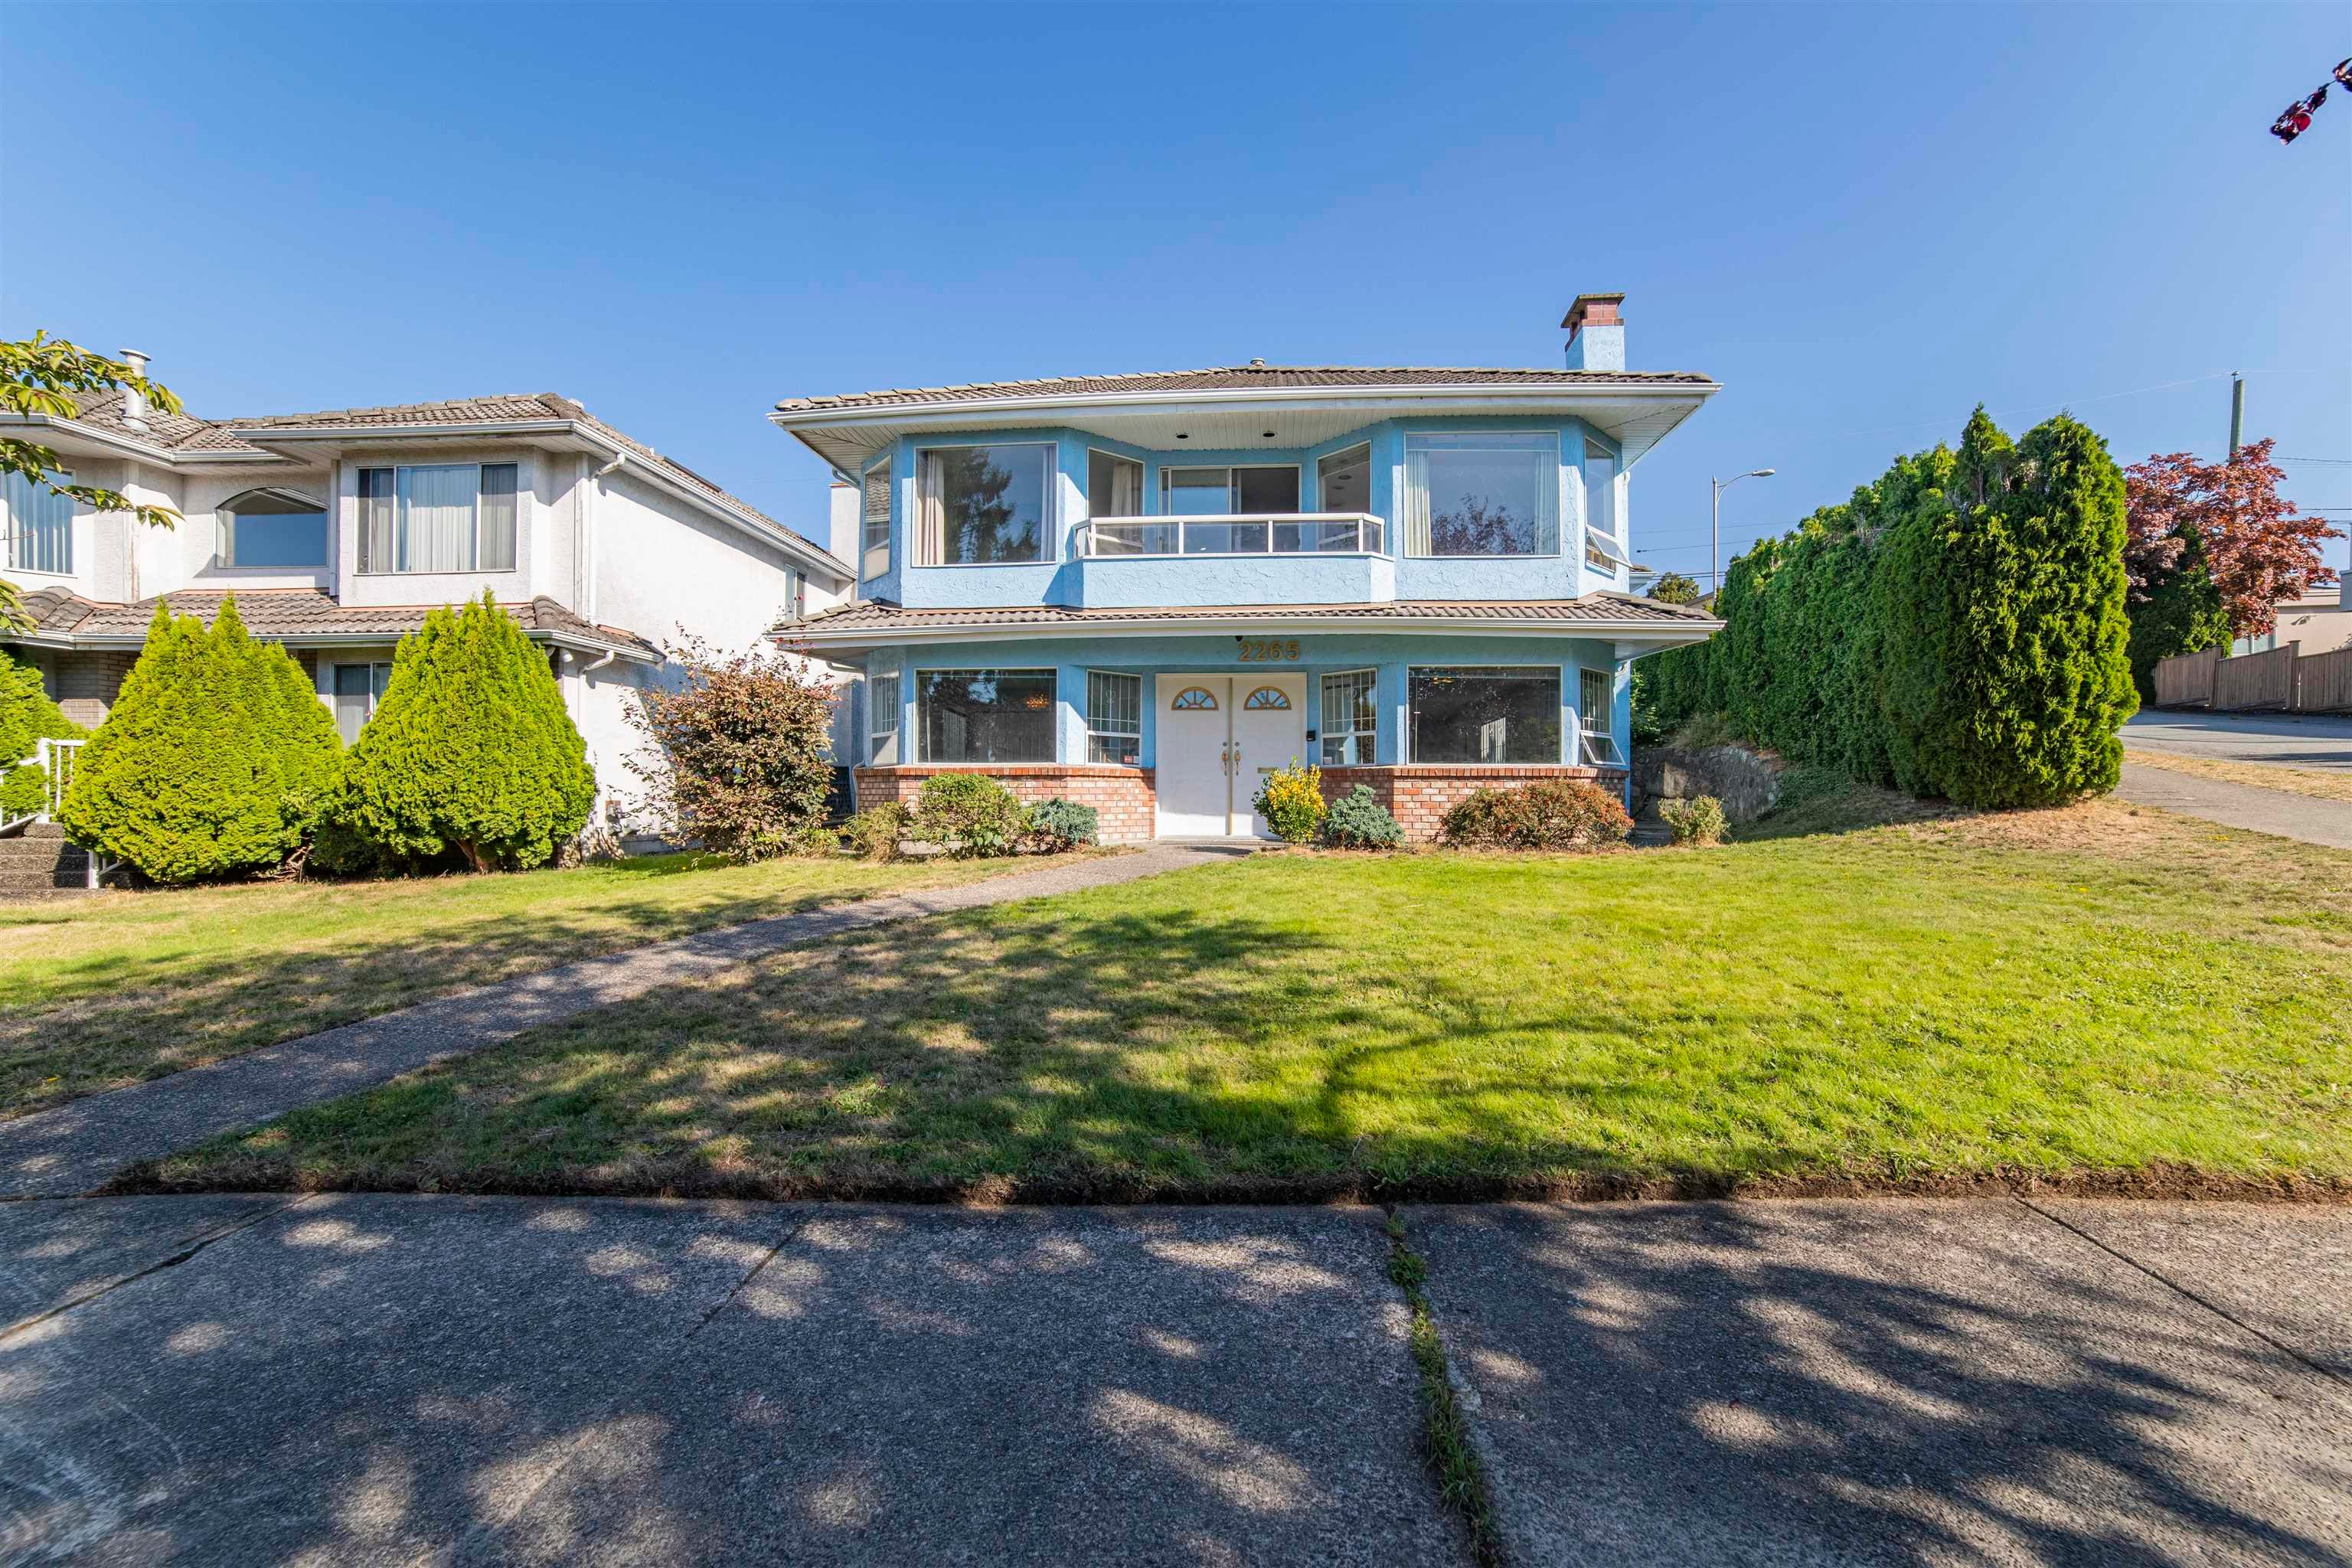 2265 BONACCORD DRIVE - Fraserview VE House/Single Family for sale, 5 Bedrooms (R2614224) - #1